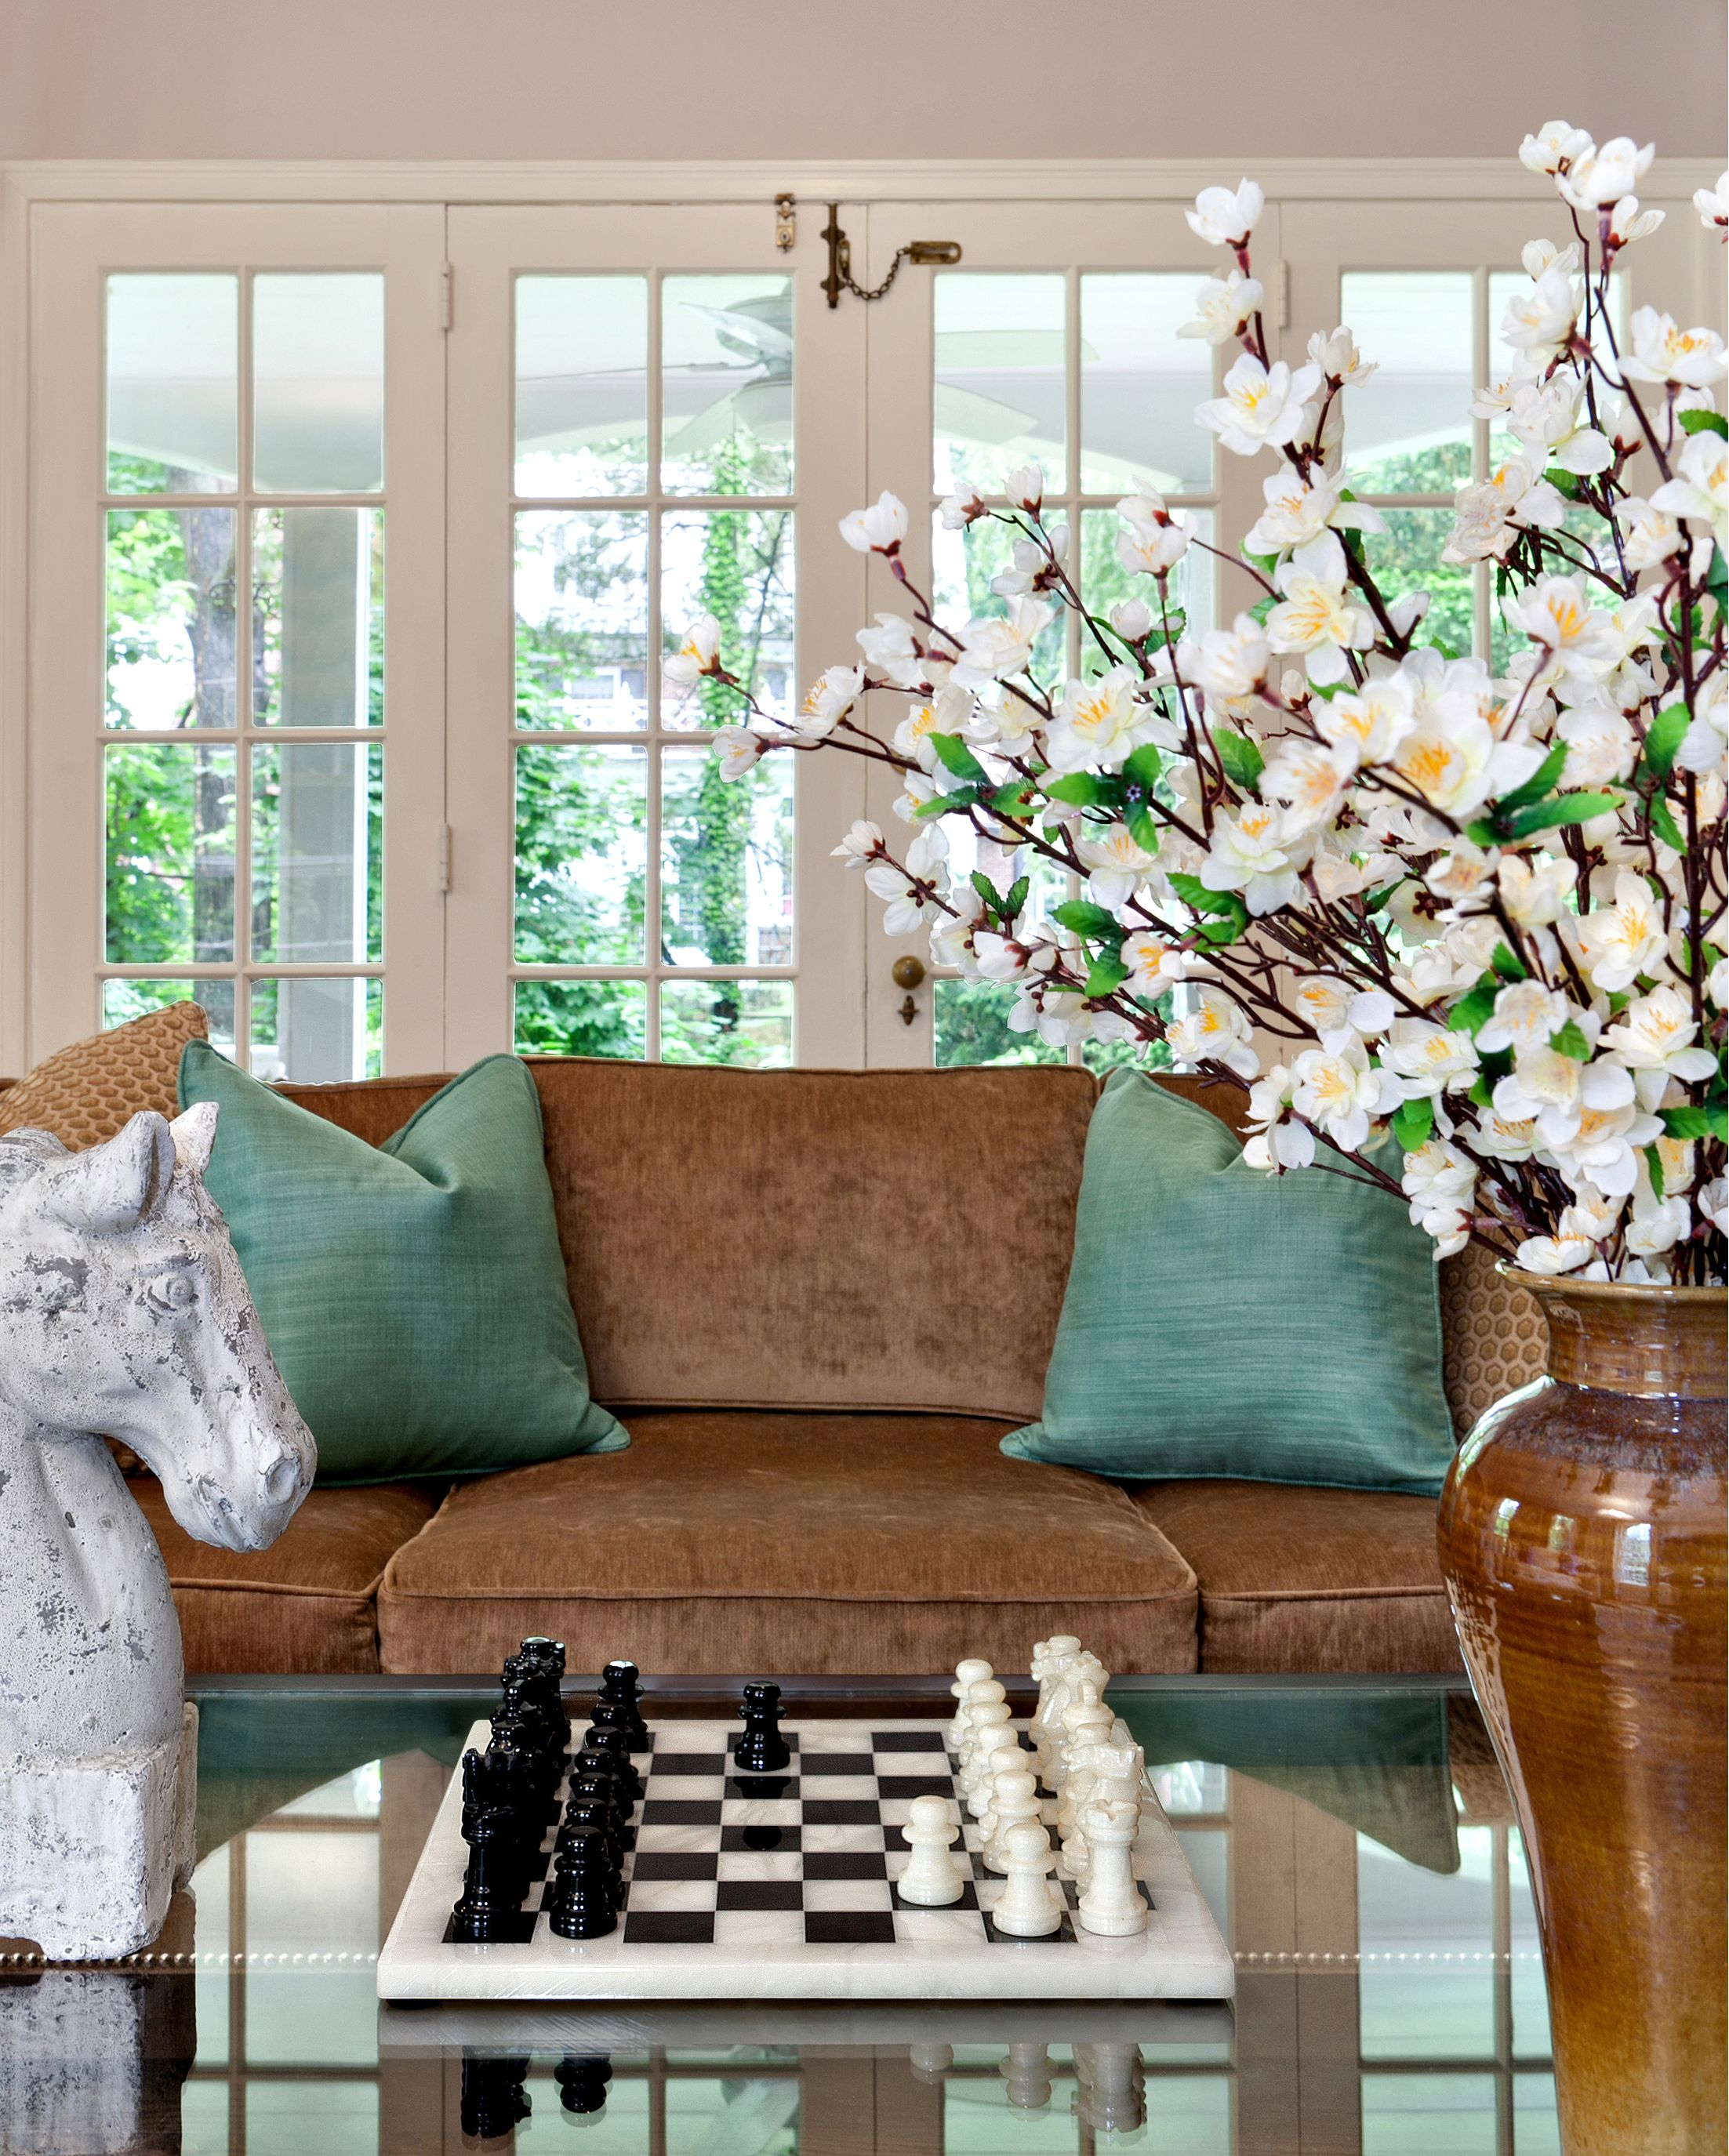 Donna Dotan Photography Inc. - Contemporary - Living room - Images by Clean Design Partners   Wayfair